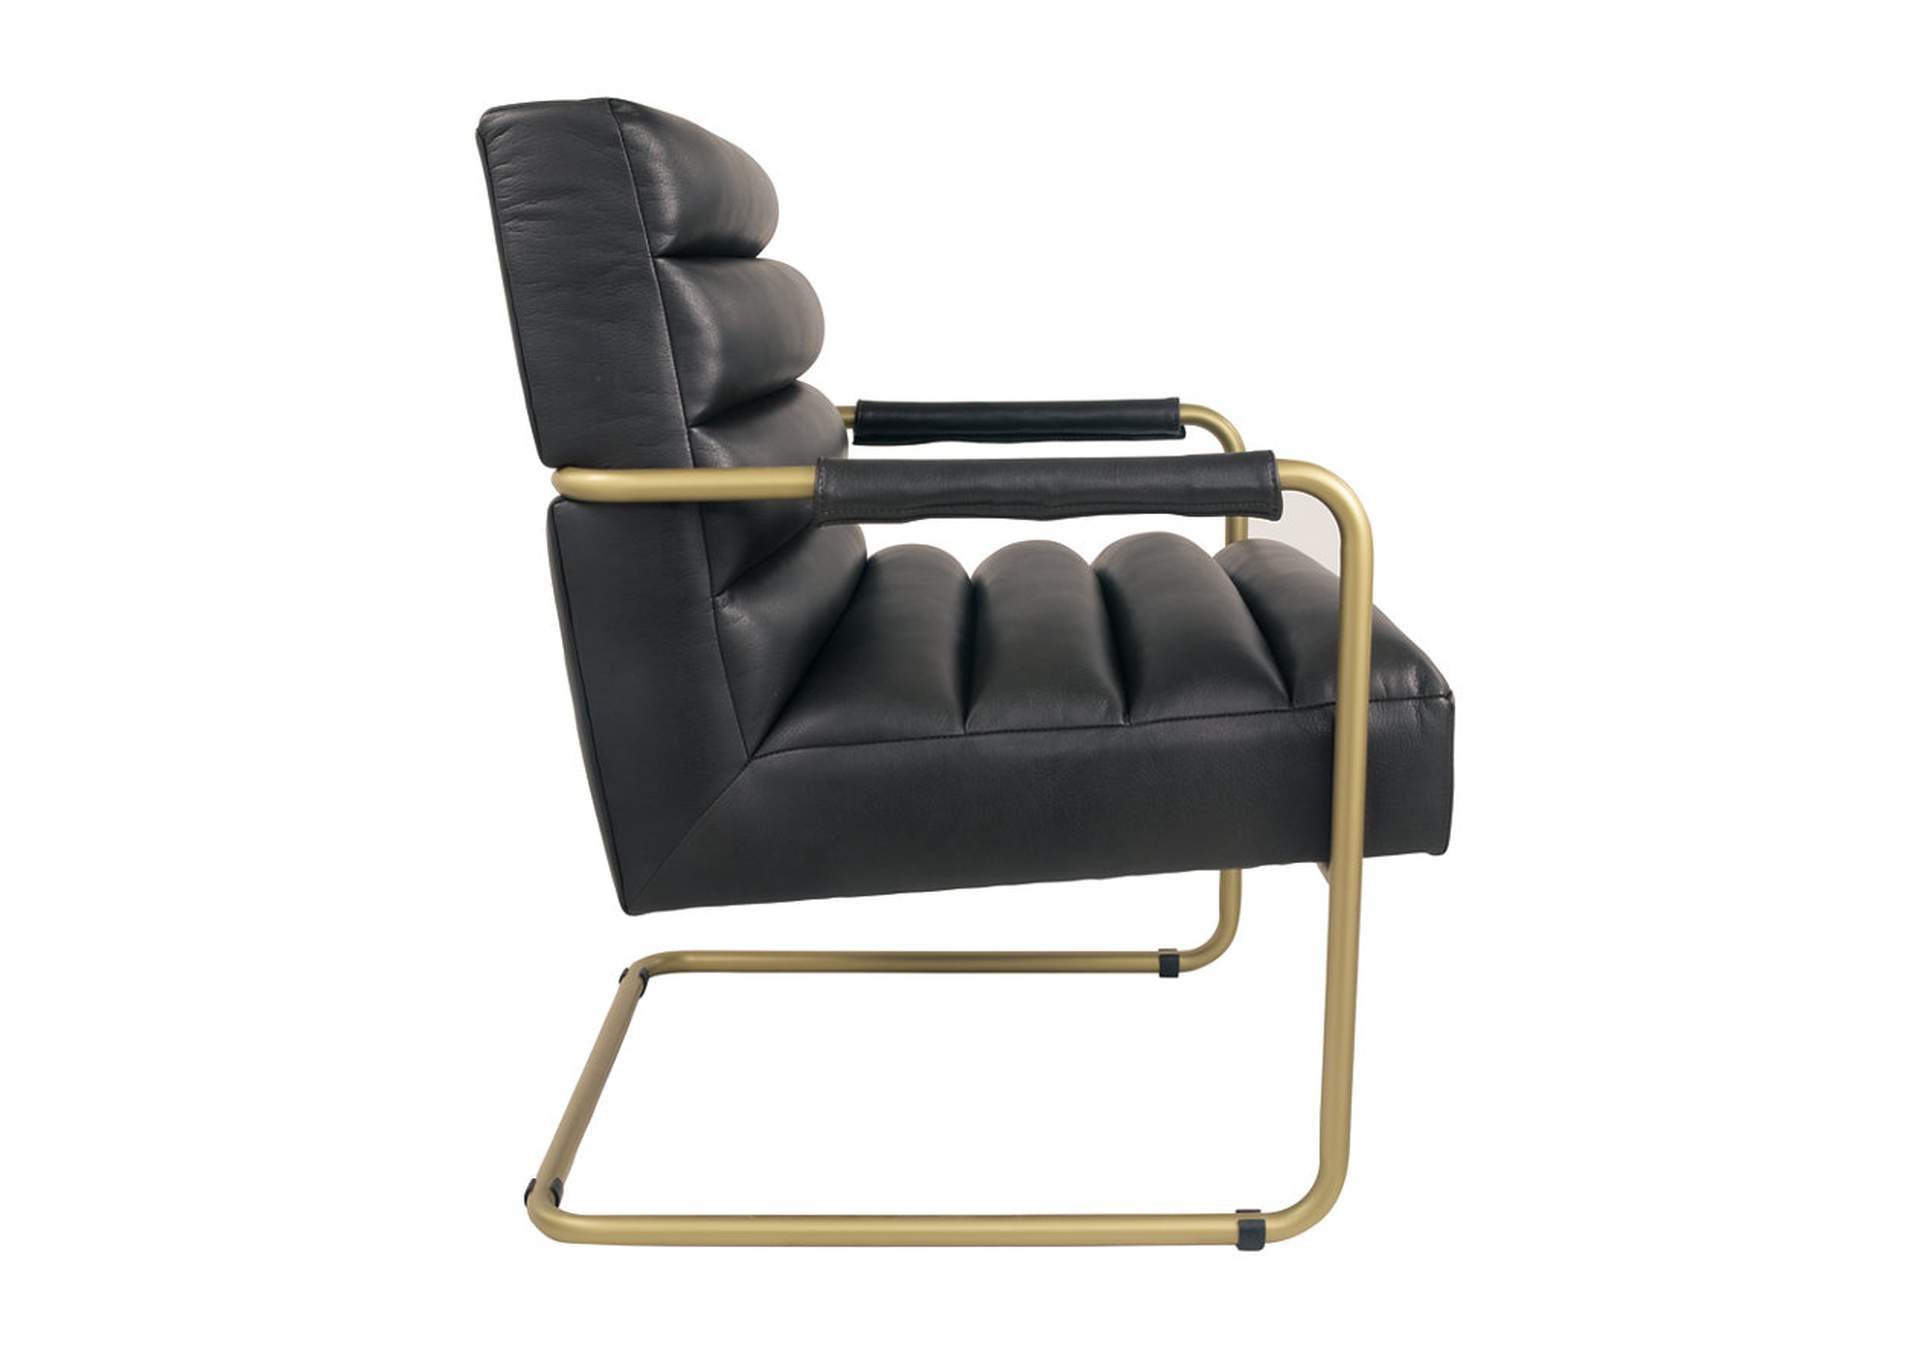 Hackley Black Accent Chair,Signature Design By Ashley